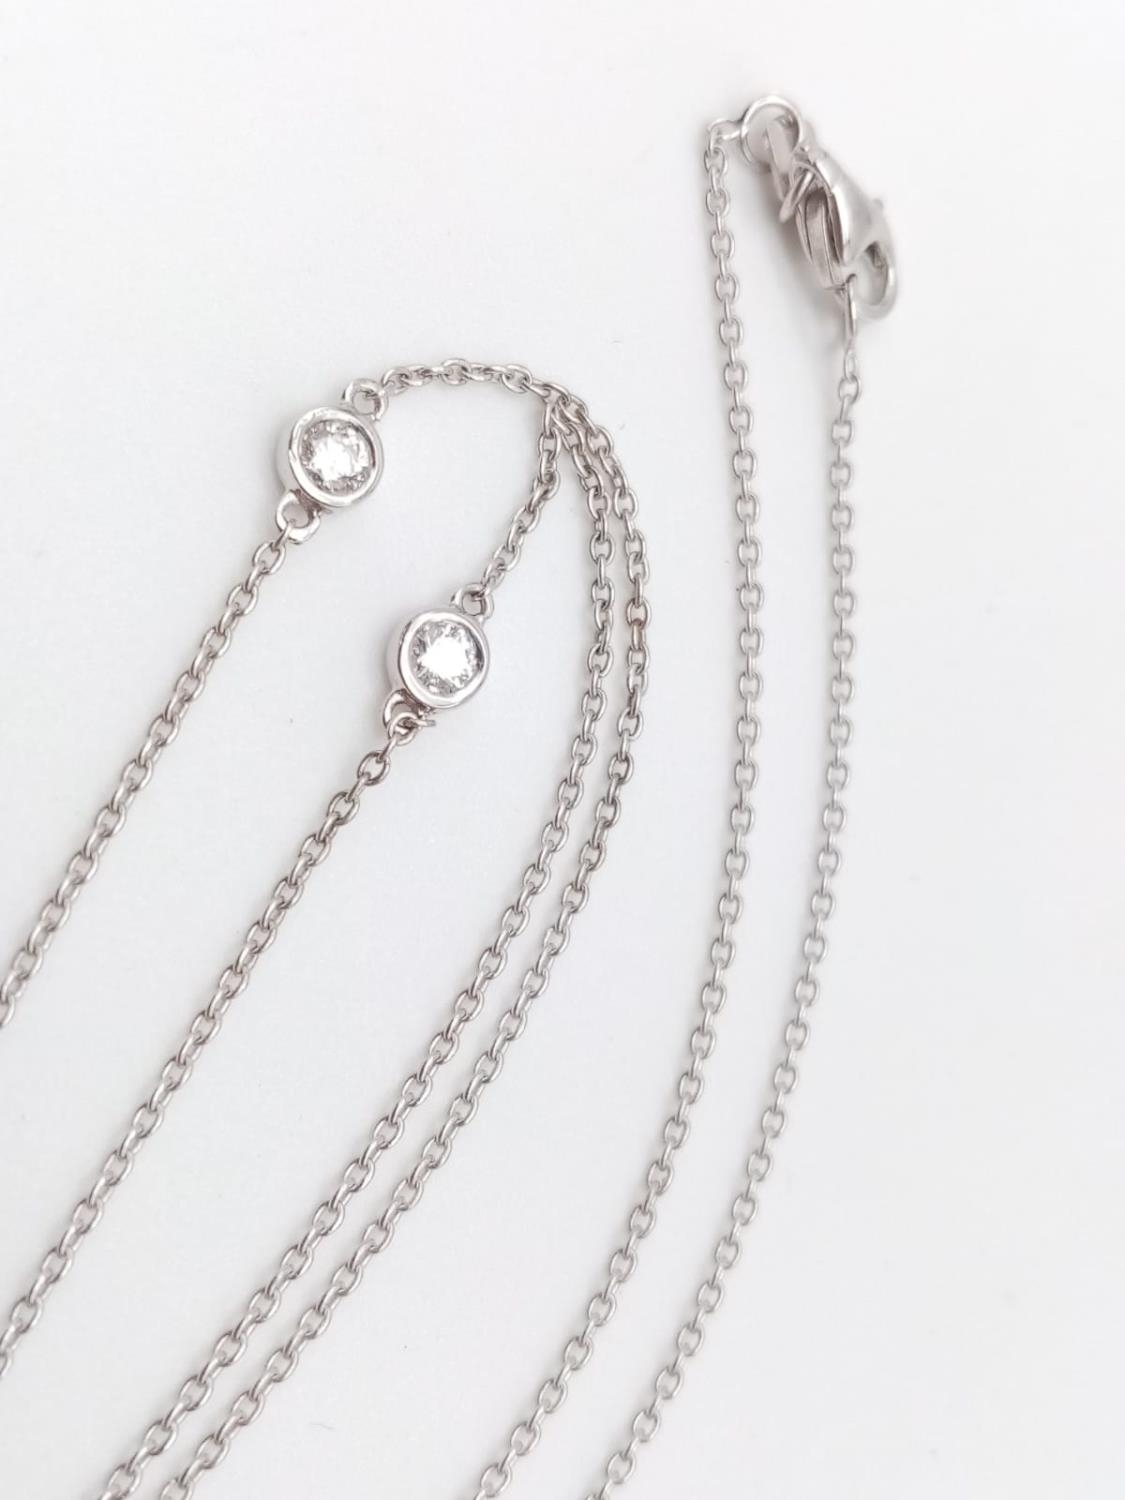 An elegant 14k white gold diamond necklace, weight 2.5g and approx 0.50ct diamonds chain 43cm long - Image 3 of 5